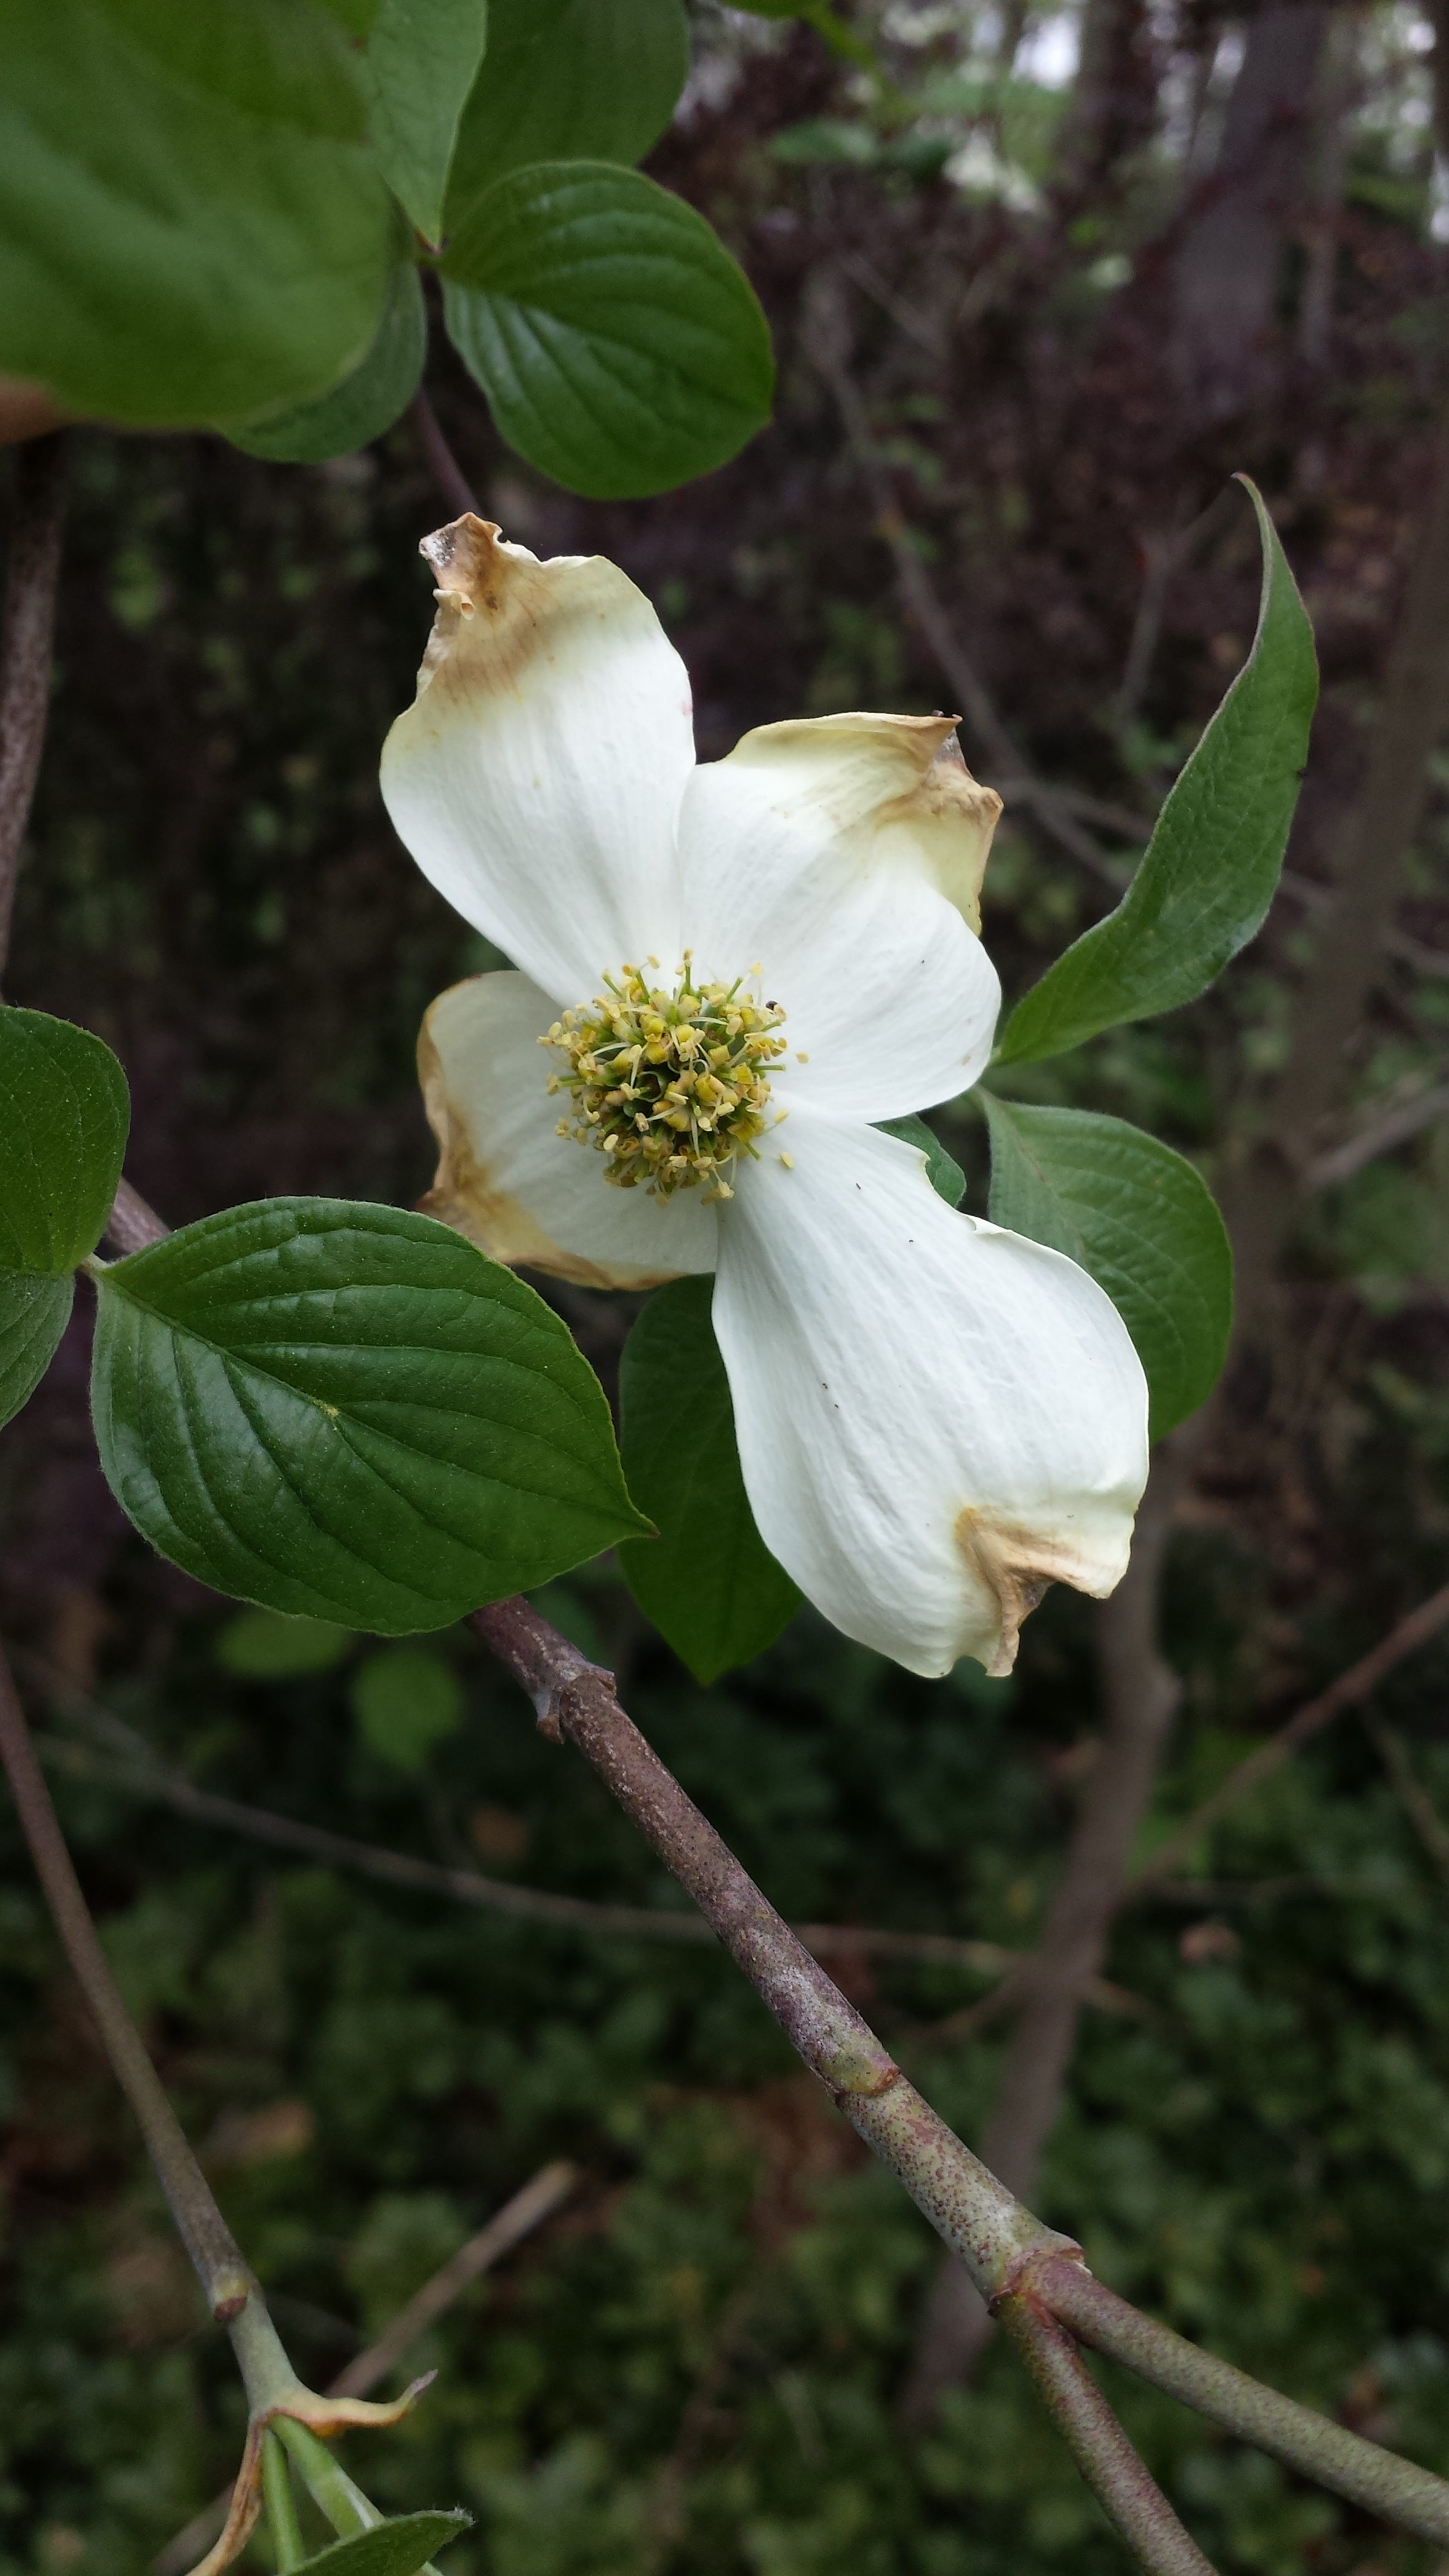 This is the first bloom for a 3-year-old volunteer wild dogwood